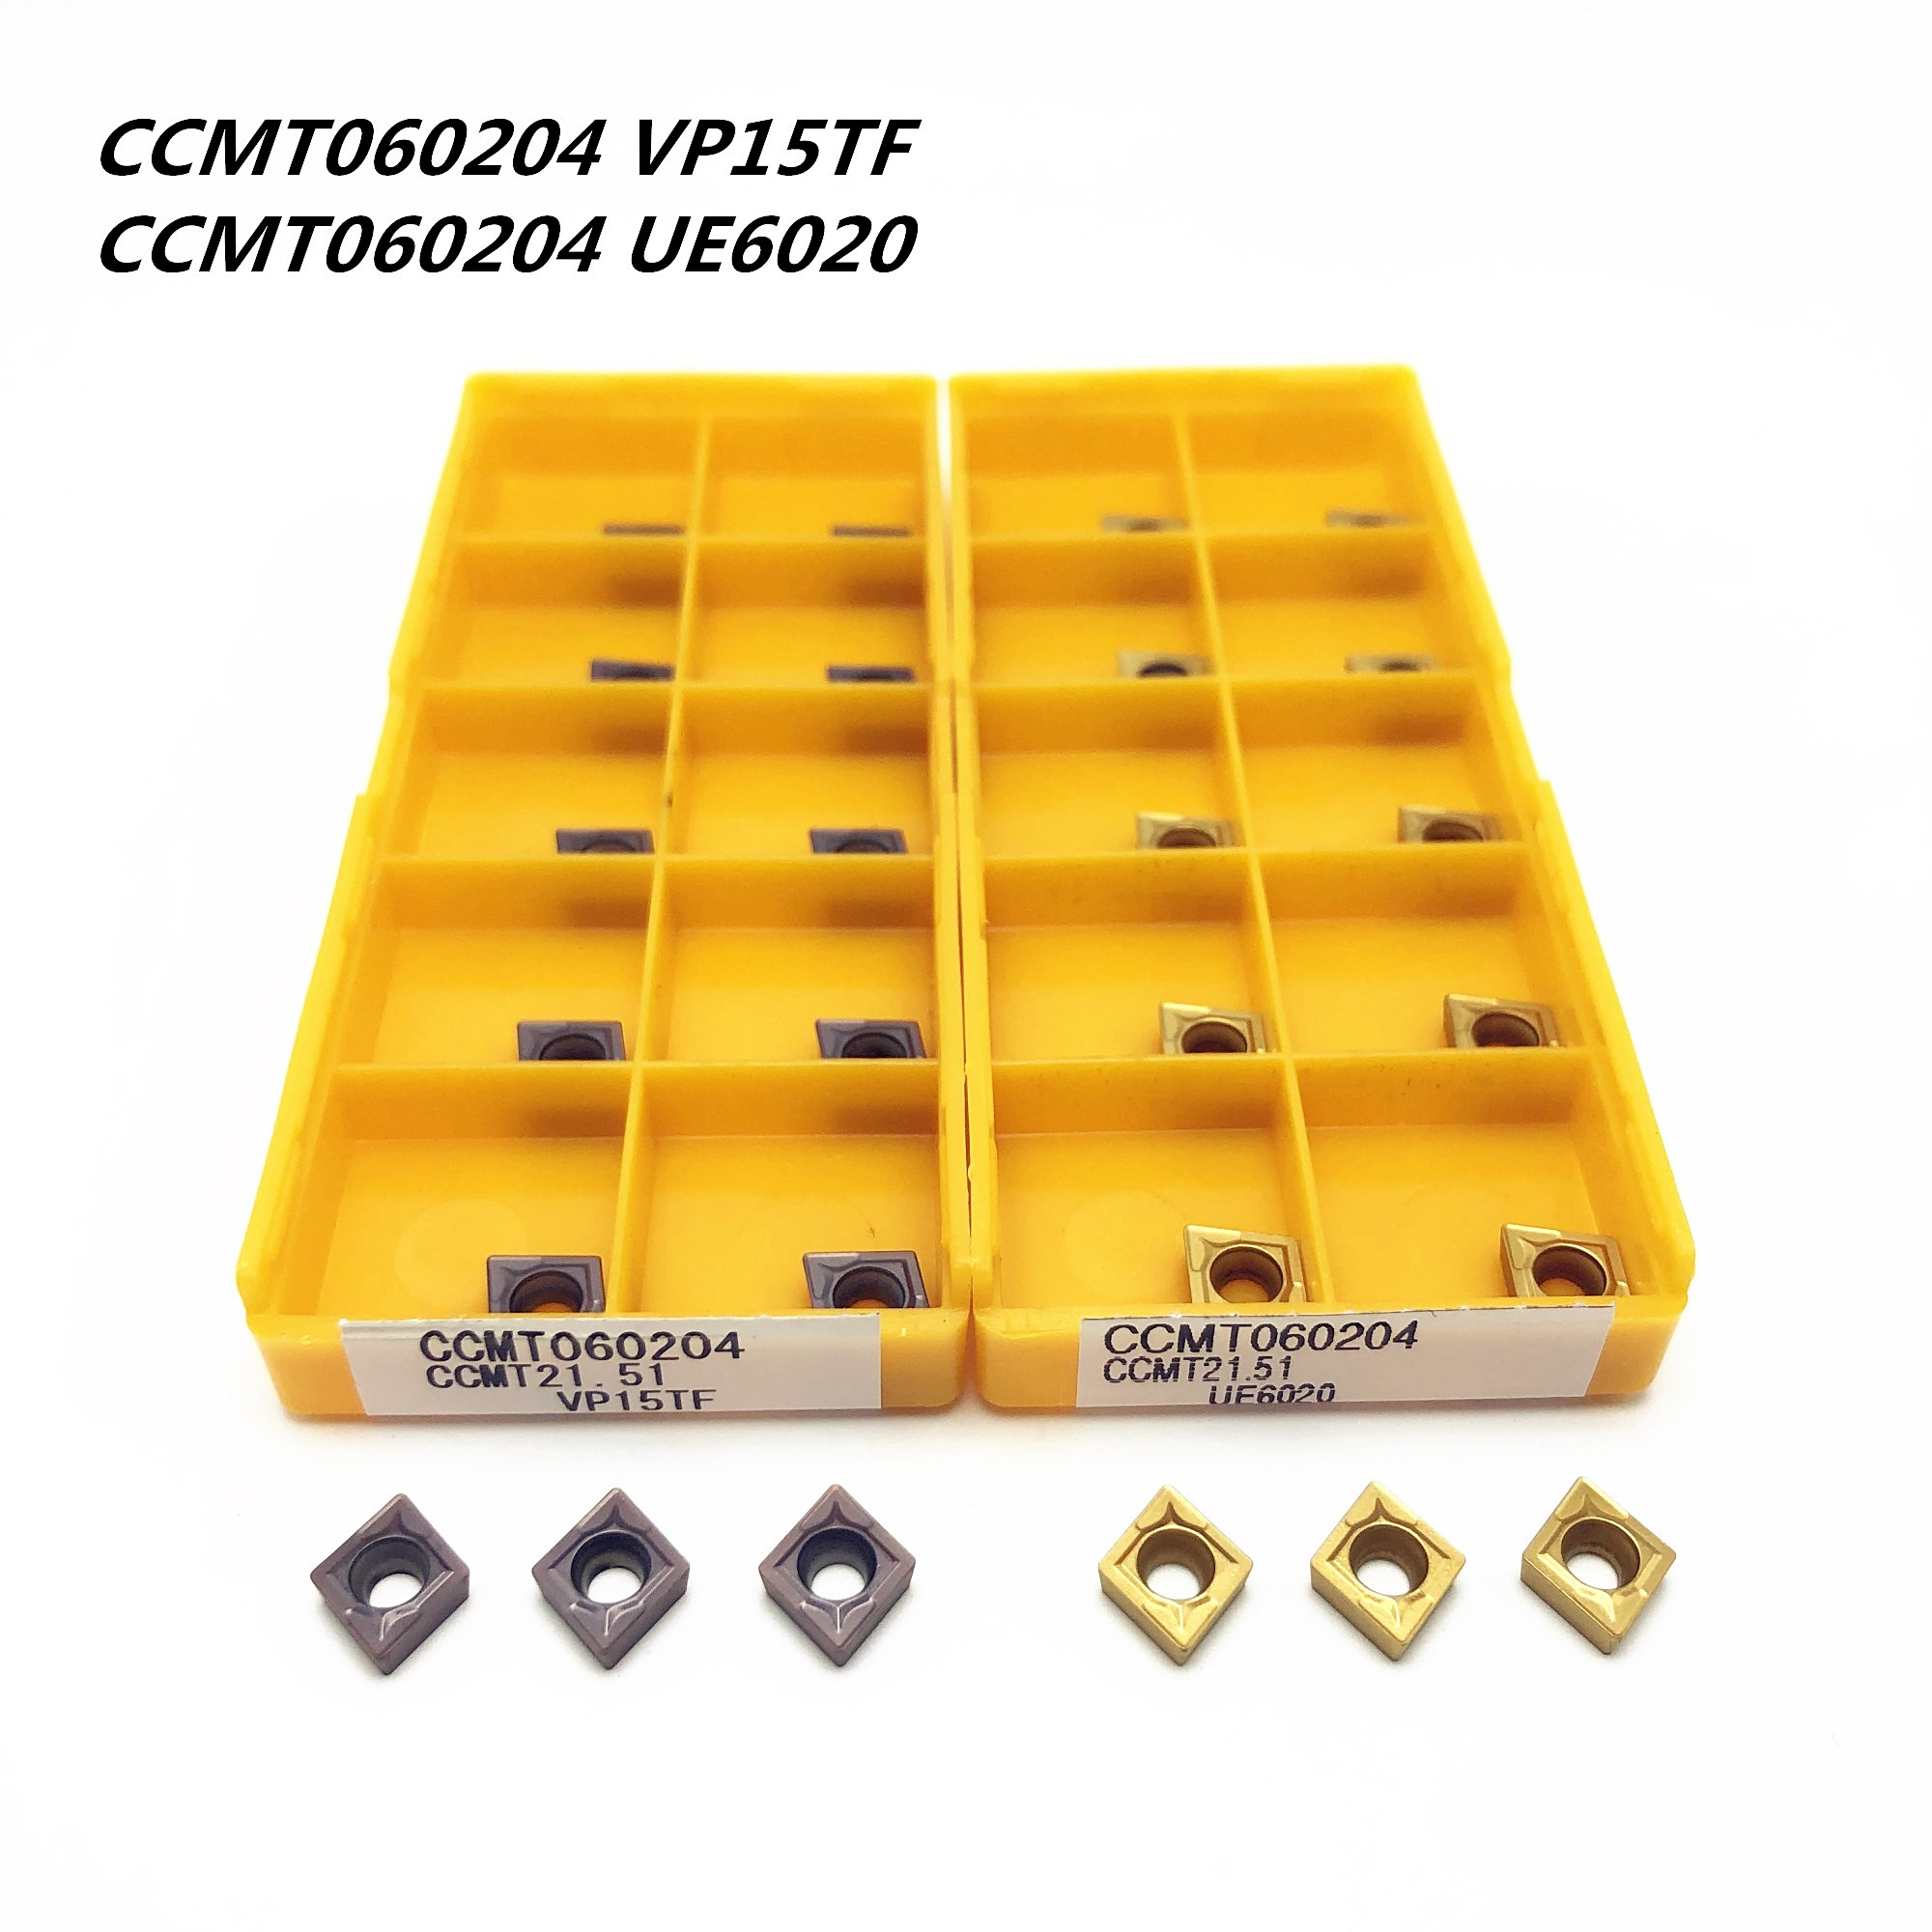 Tungsten Carbide CCMT060204 UE6020 VP15TF US735 Internal Turning Tool Metal Turning Tool Carbide Insert CCMT 060204 Cutting Tool